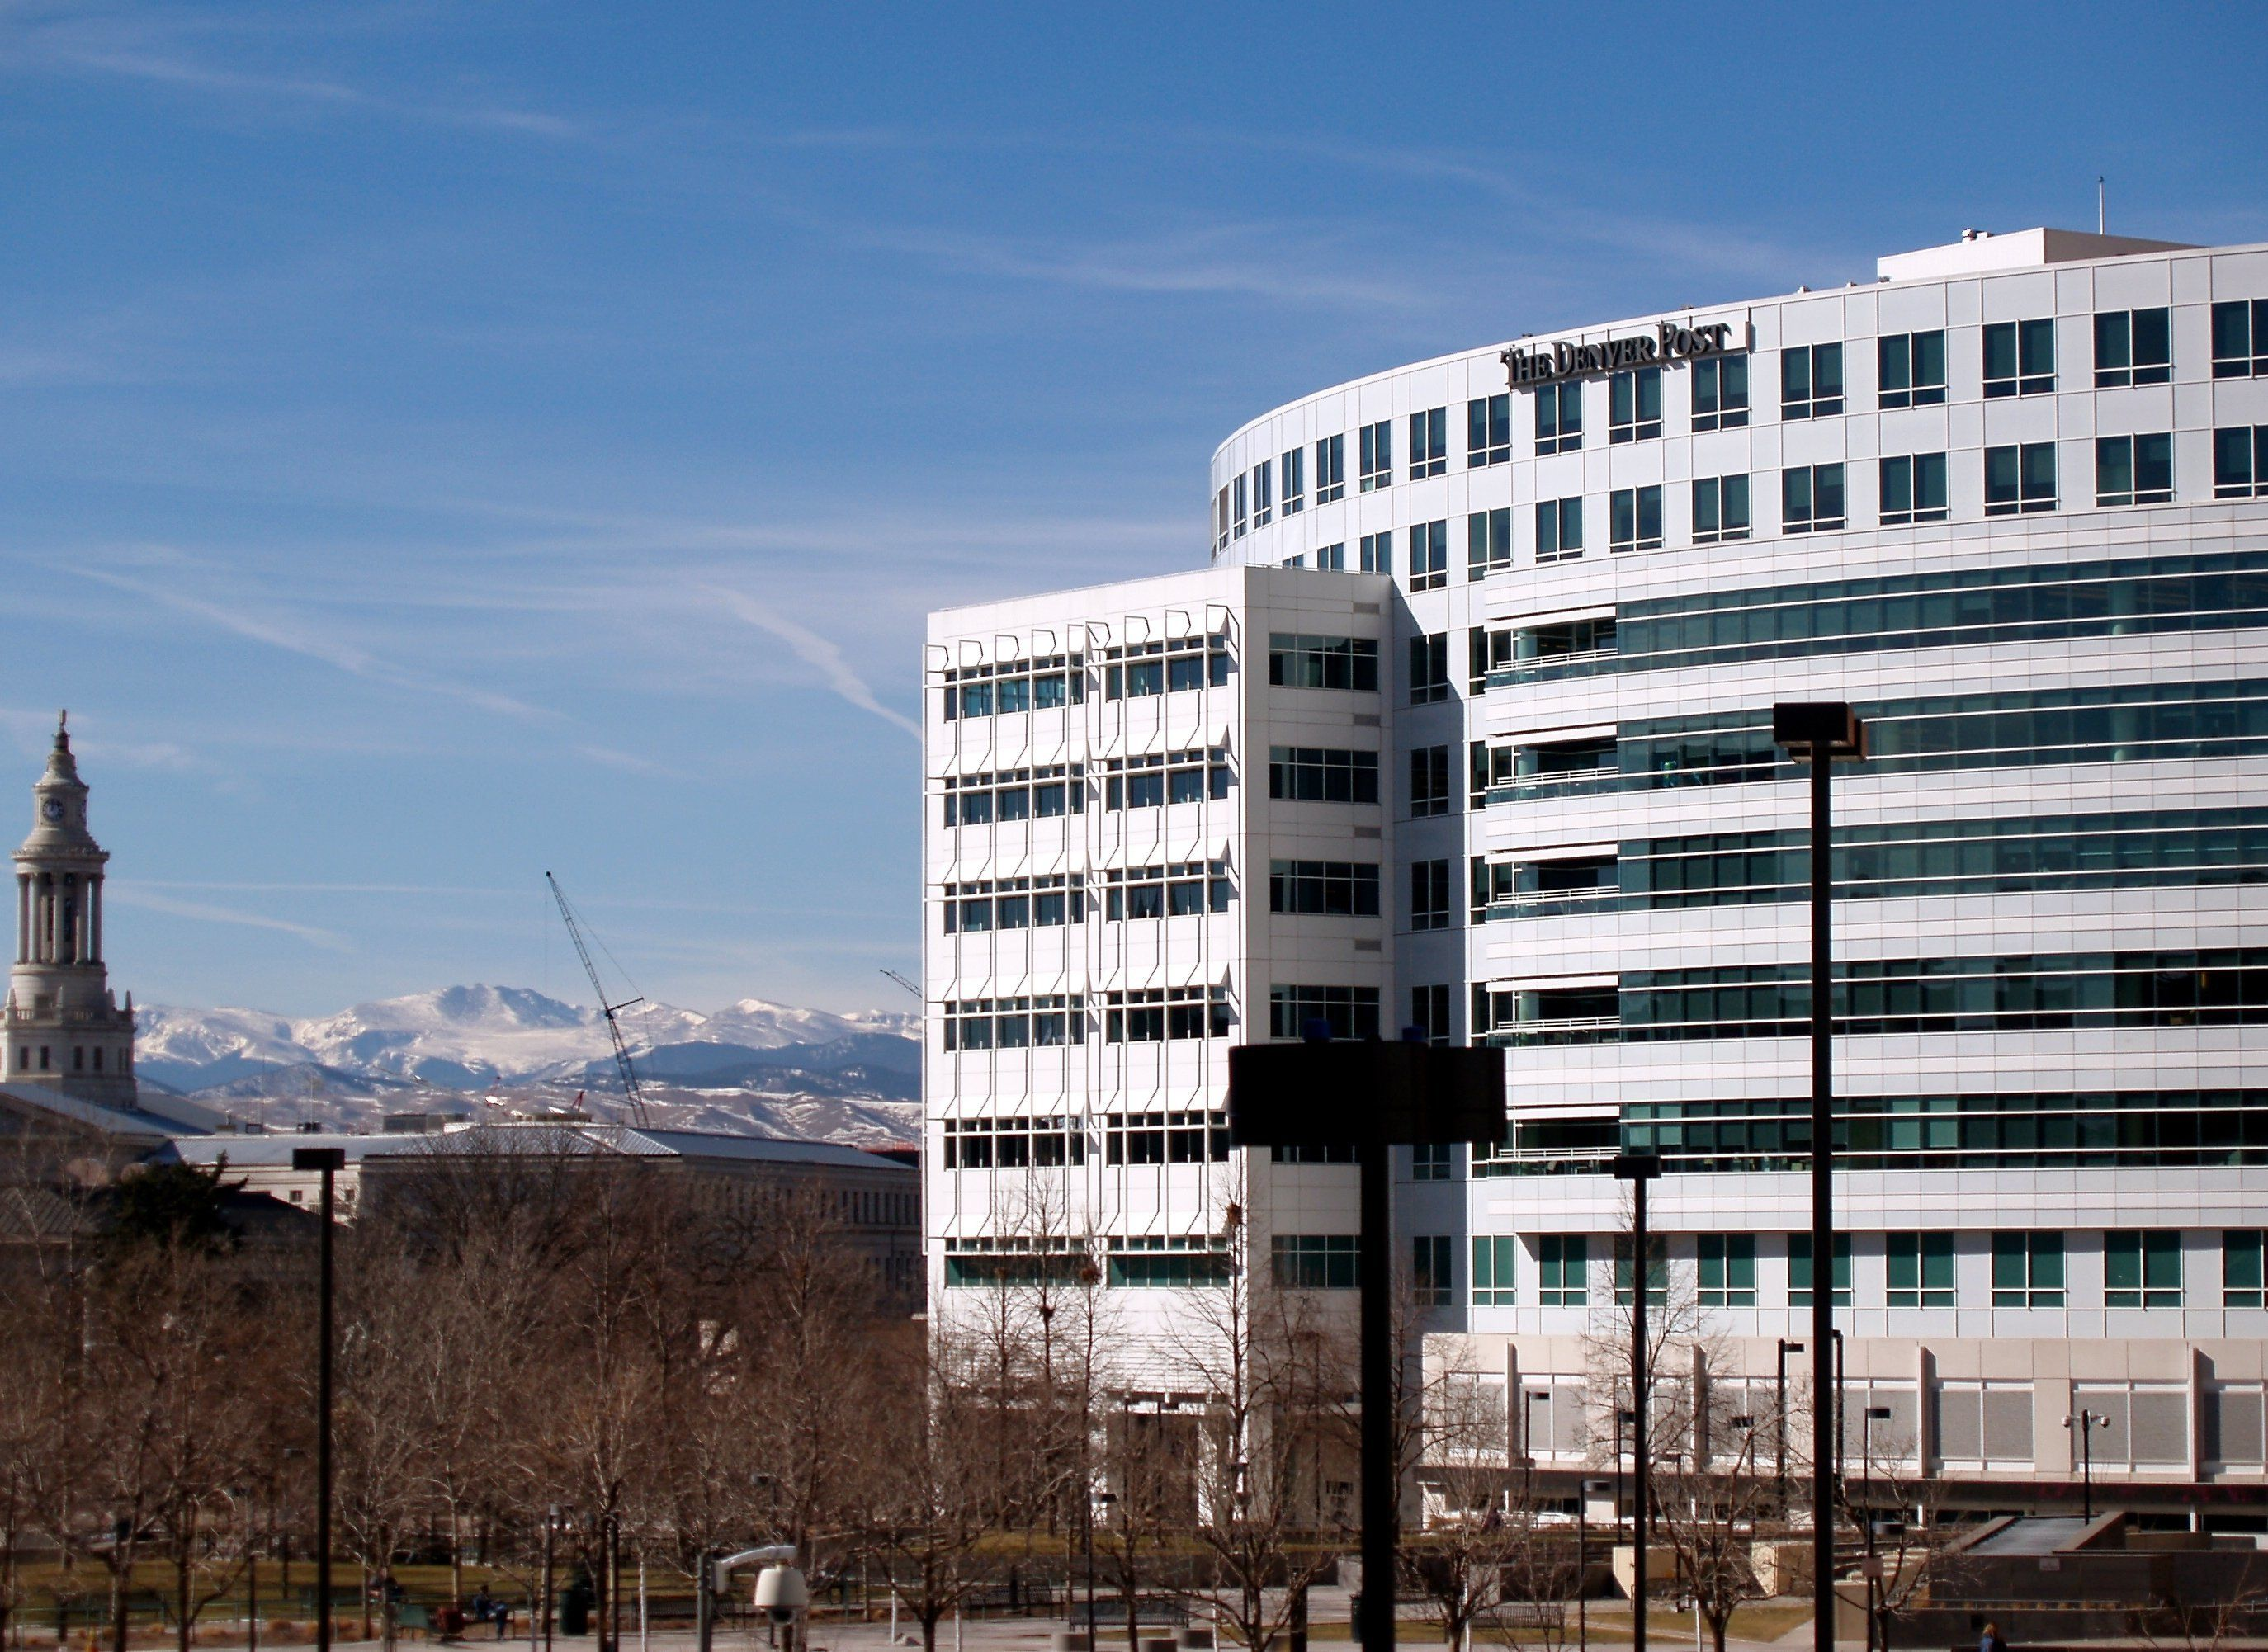 As a cost-cutting measure, The Denver Post movedits decimated news operation out ofits old building earlier this